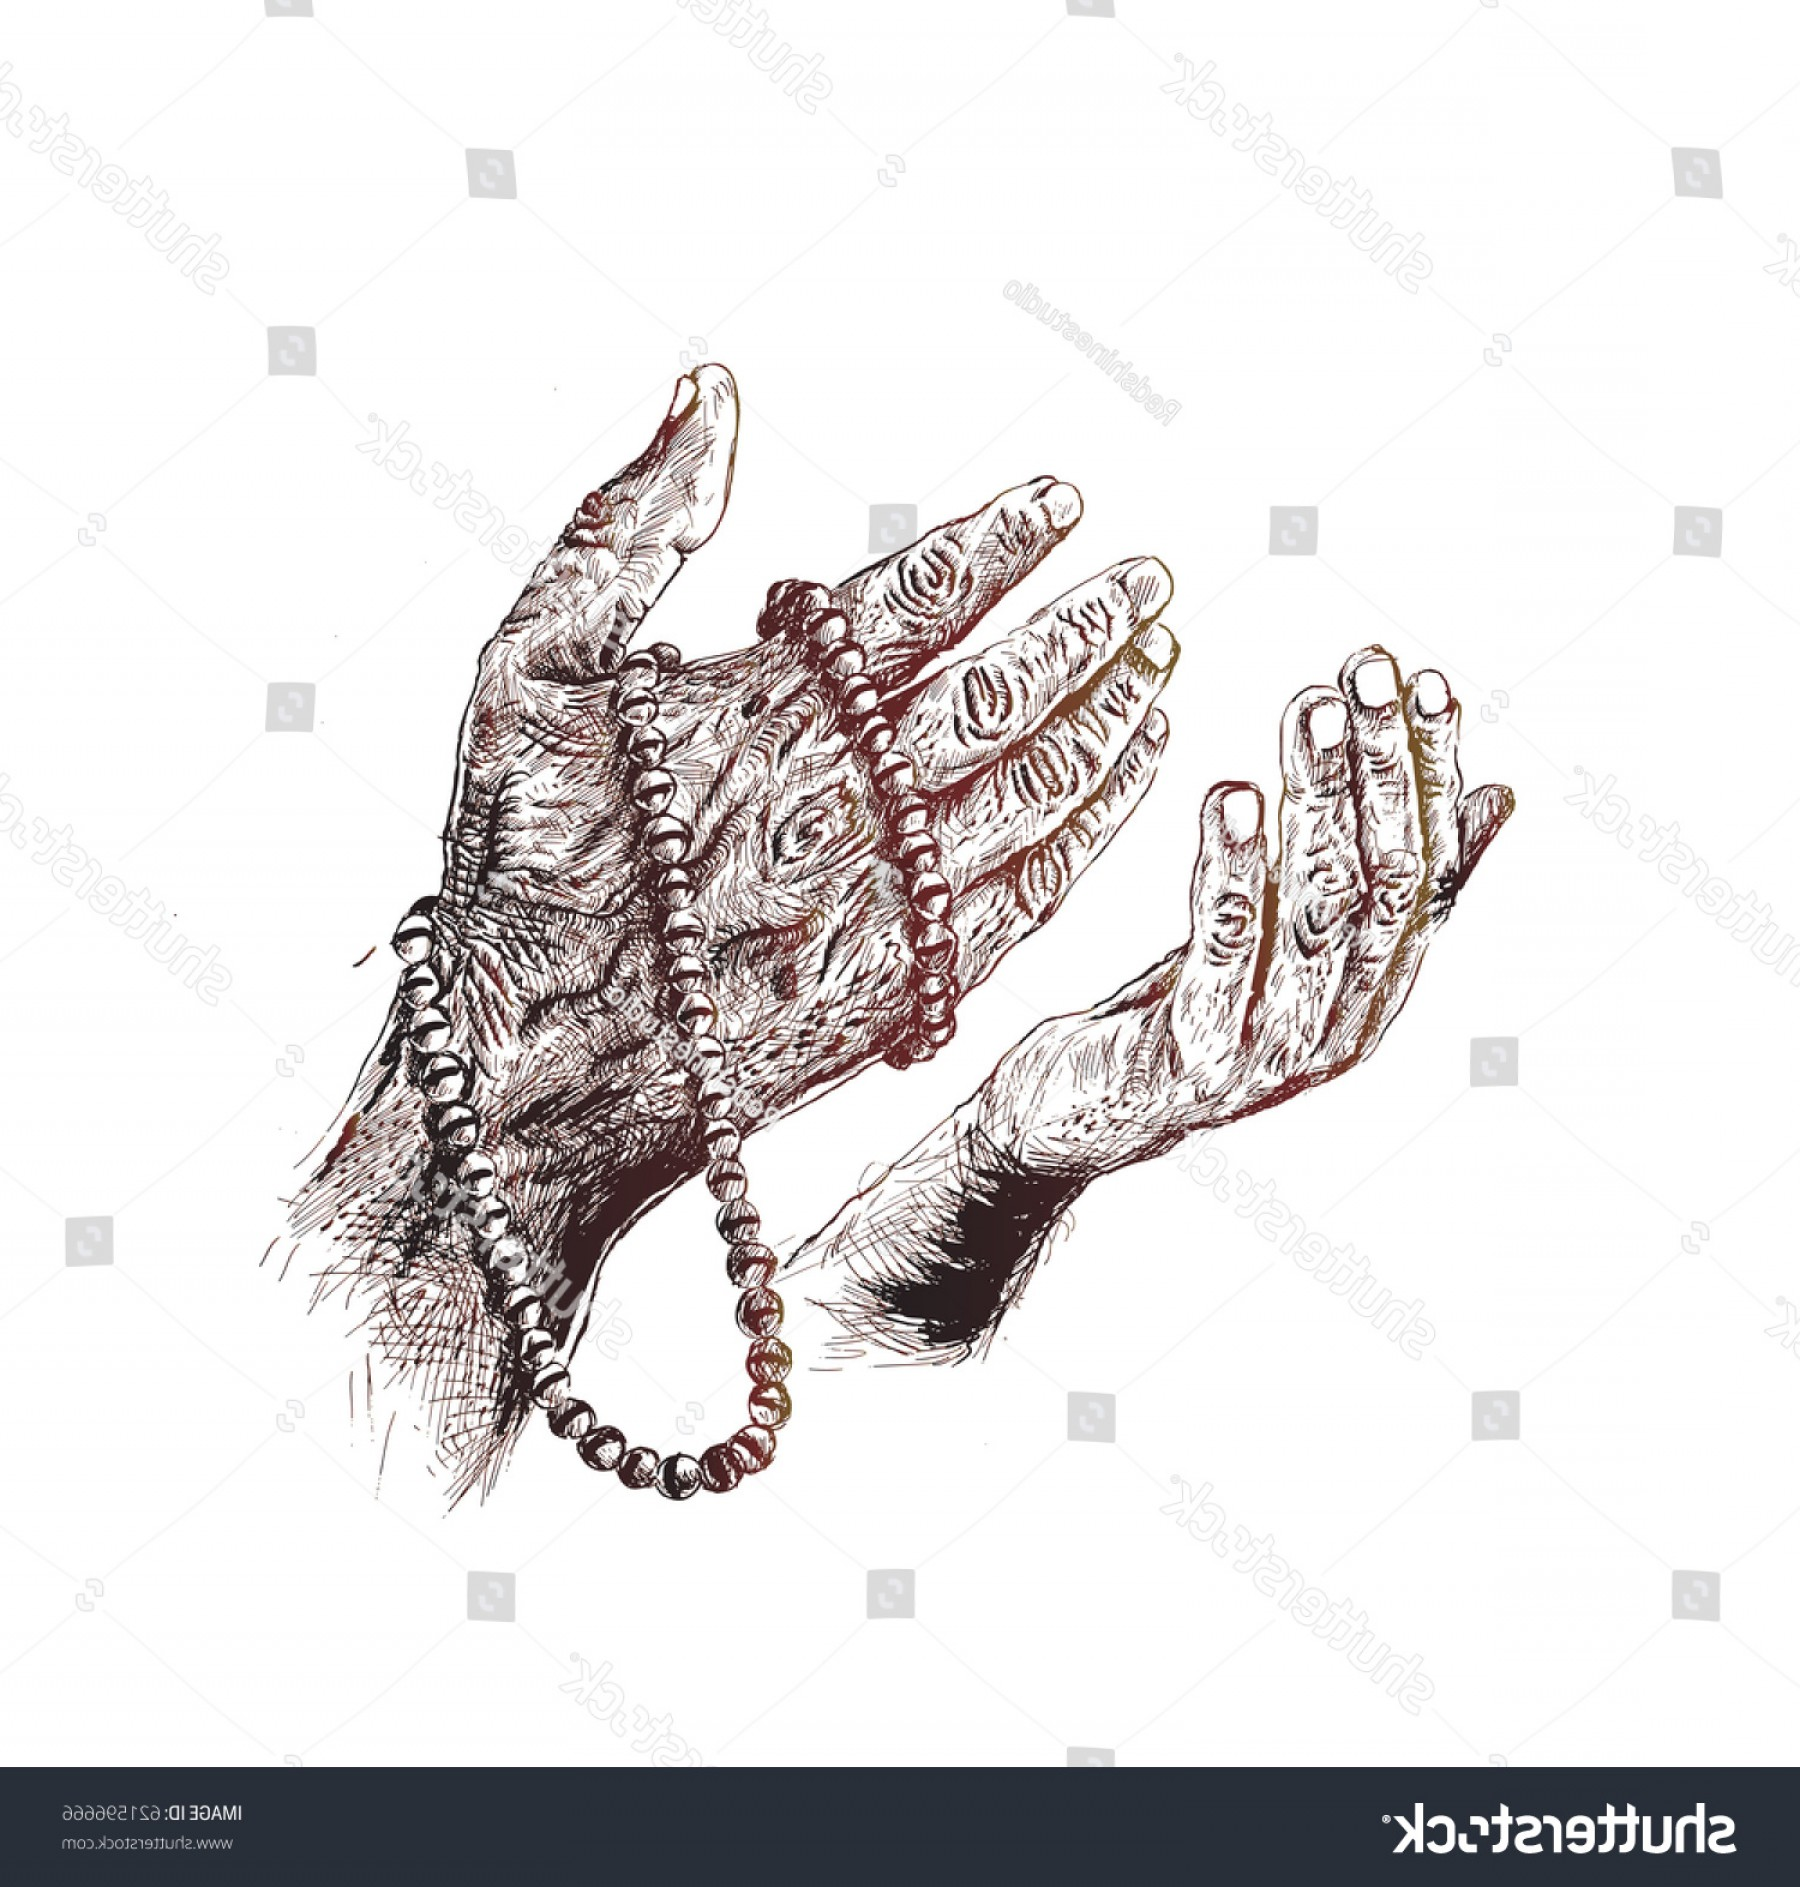 Praying Hands Vectors Shutterstock: Praying Hands Rosary Hand Drawn Sketch